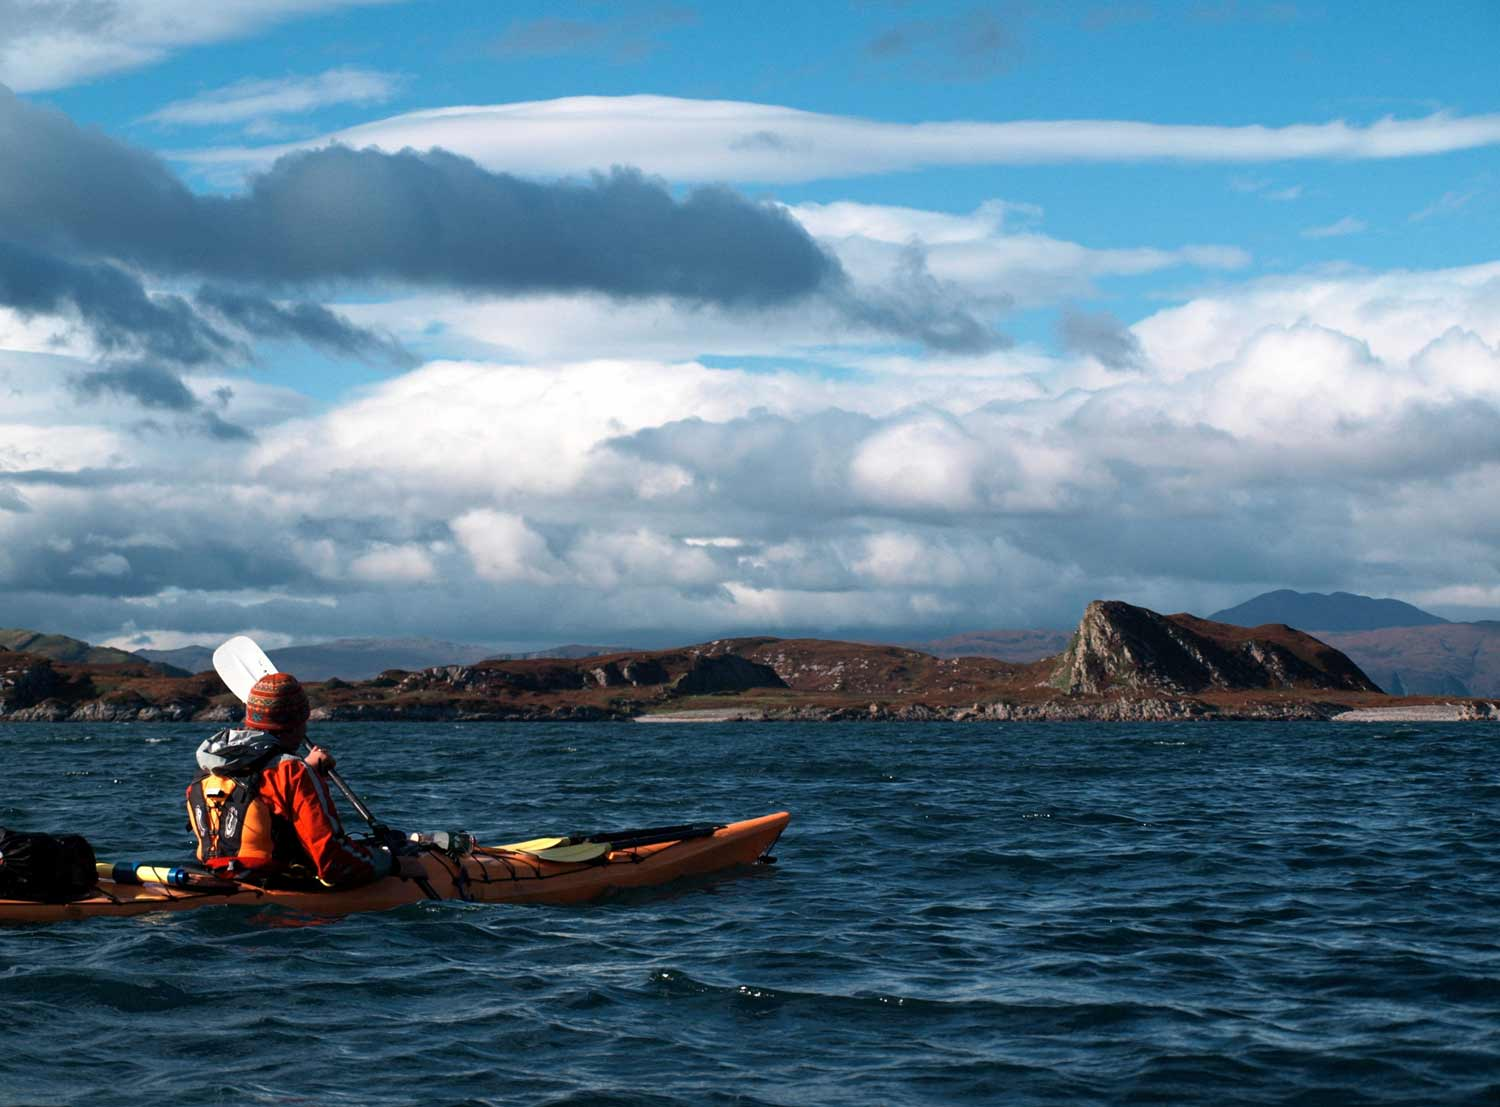 sea kayaker in stunning Hebrides scenery